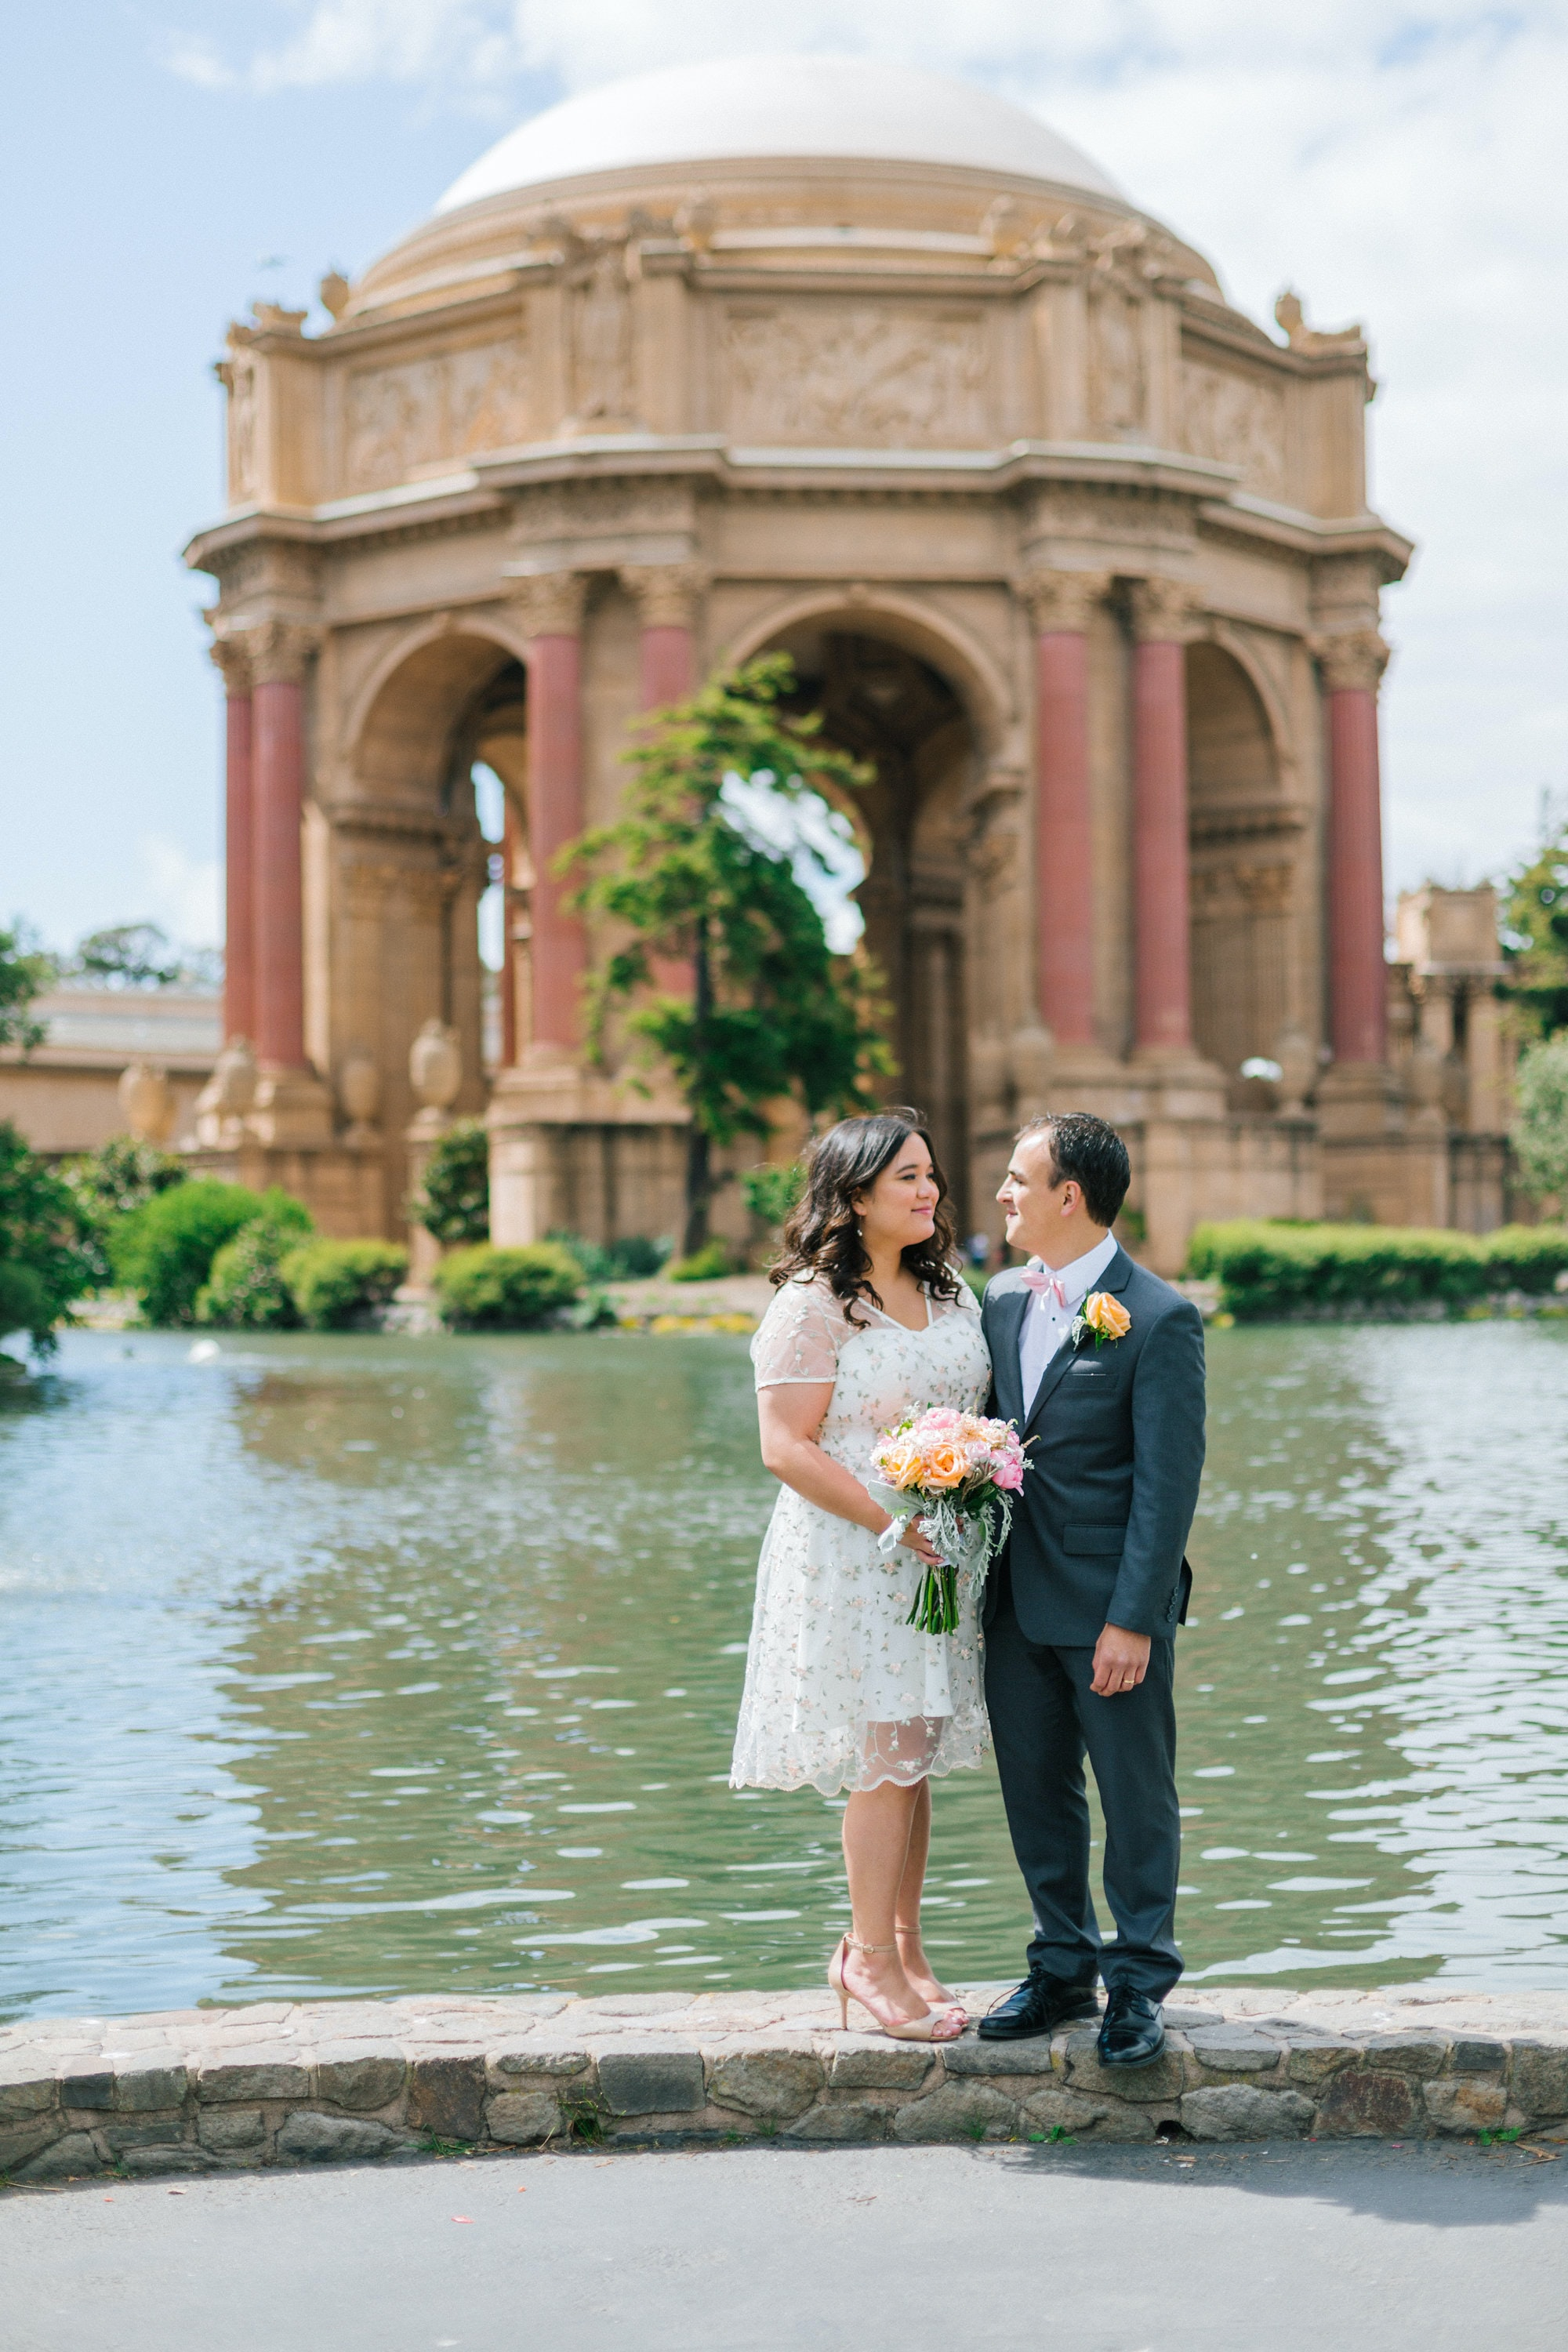 wedding couple standing on concrete ground beside body of water